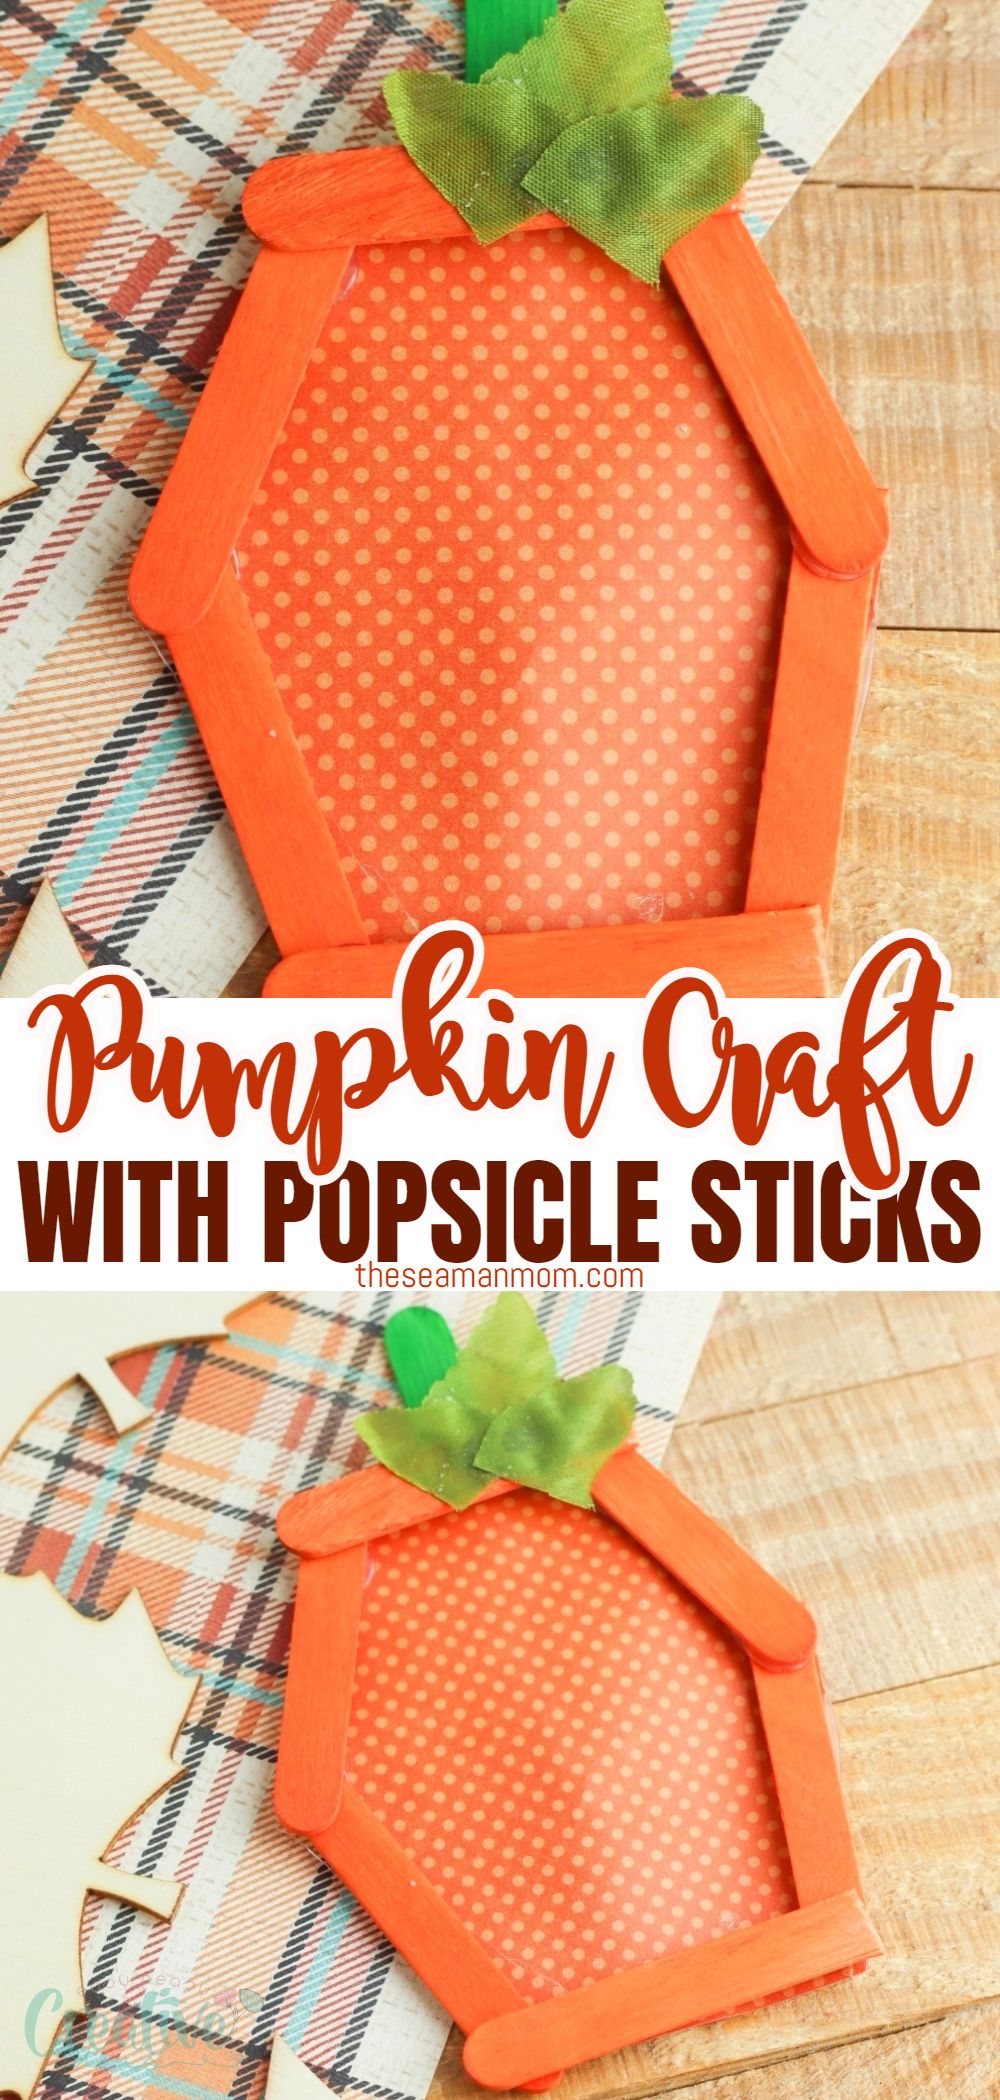 With this adorable pumpkin craft, your kids can have a blast making their own fall project using popsicle sticks and paper! via @petroneagu